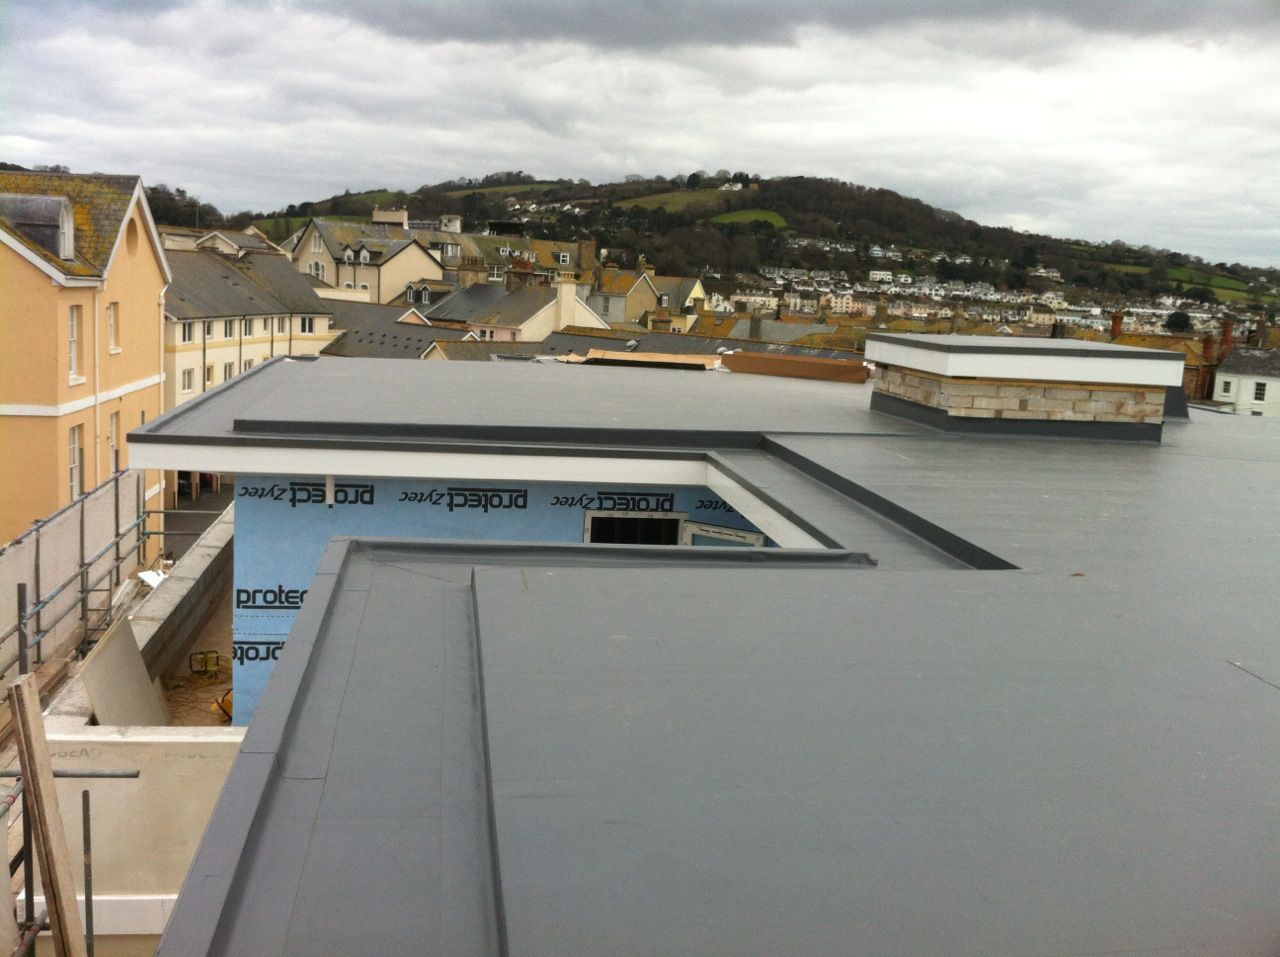 Single Ply Roofing With Gutter Detail Roofs Pinterest